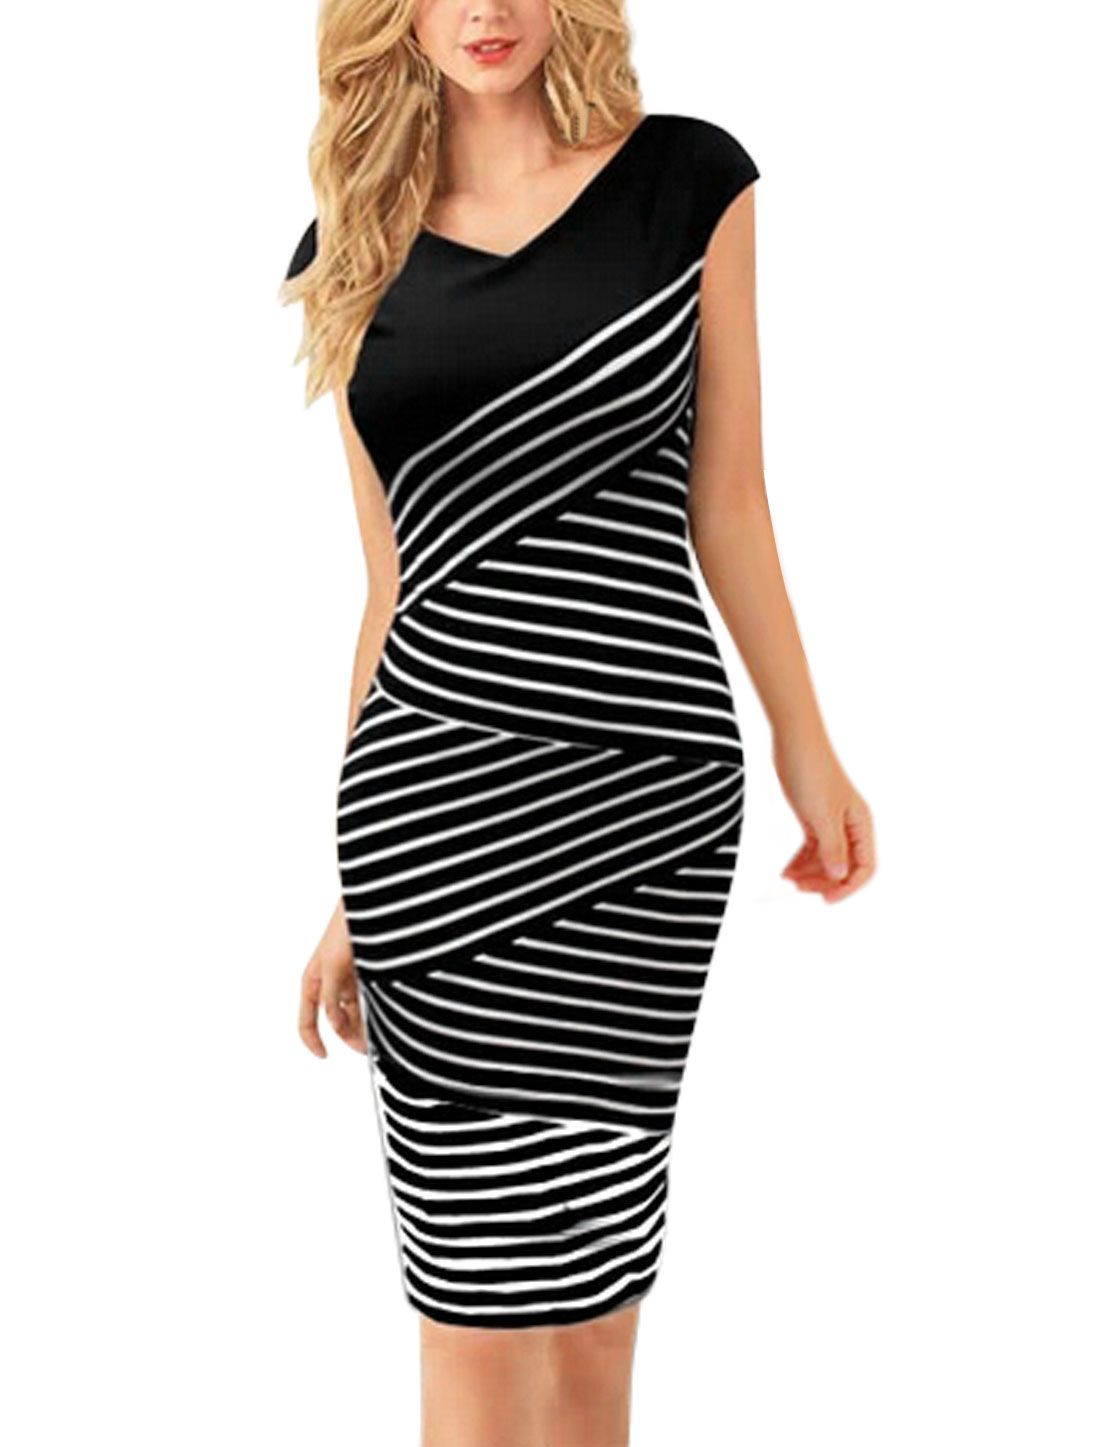 Woman Stripes Sleeveless V Neck Concealed Zipper Back Pencil Dress Black White S